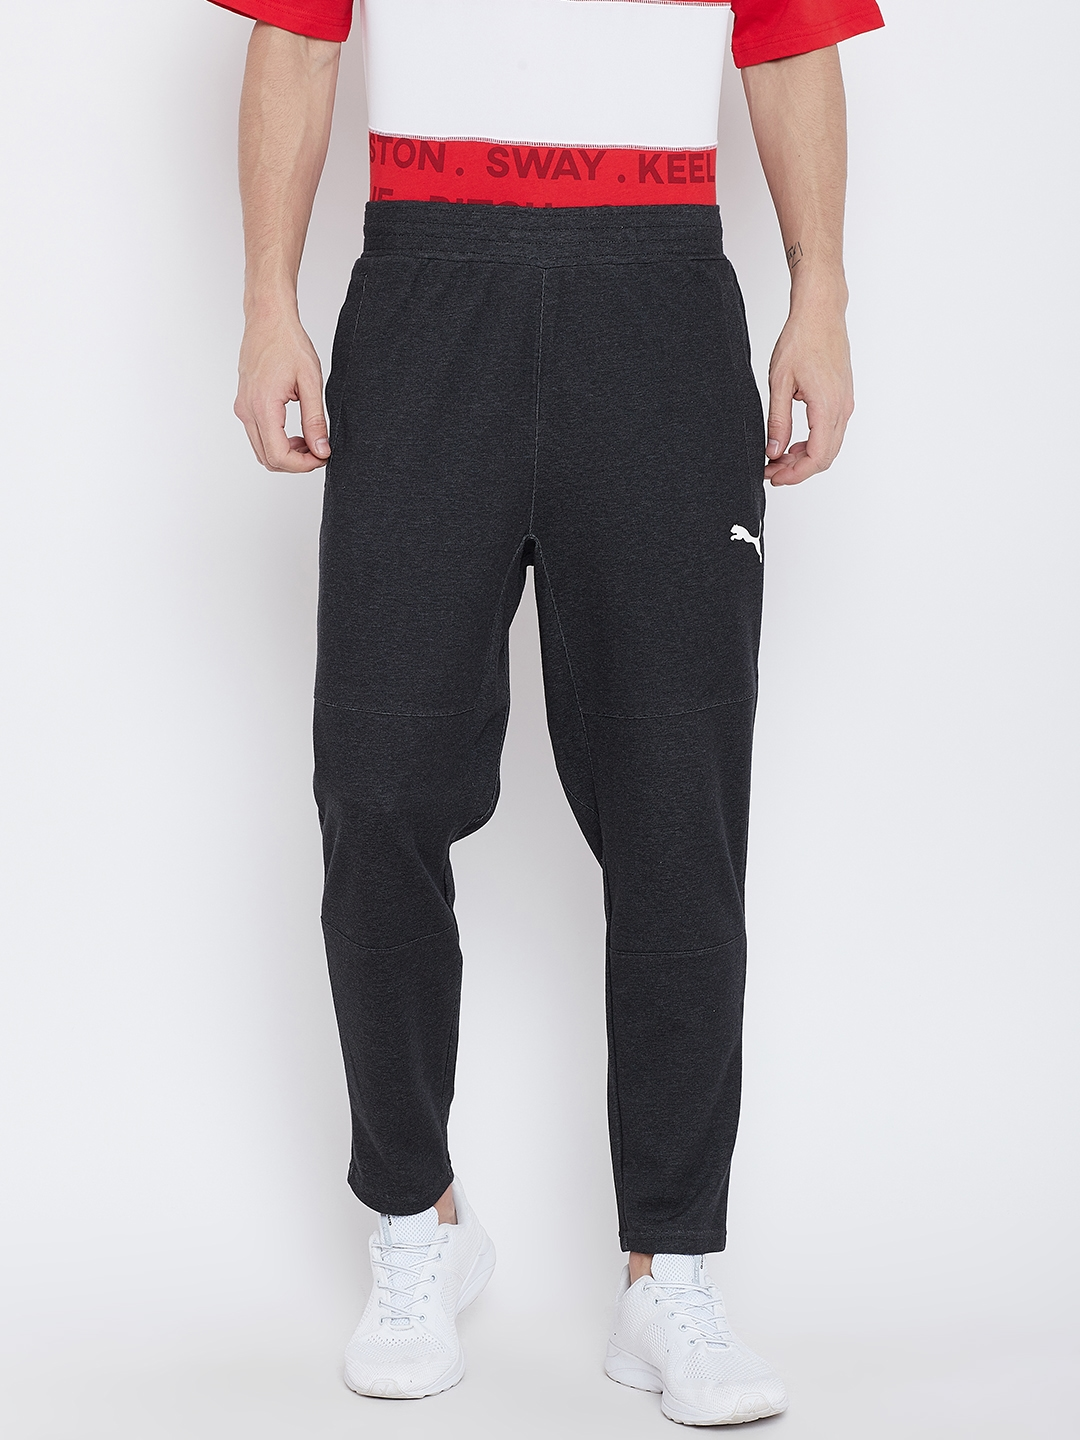 482bef29ac93 Buy Puma Men Black Energy Knit Trackster Sports Track Pants - Track ...